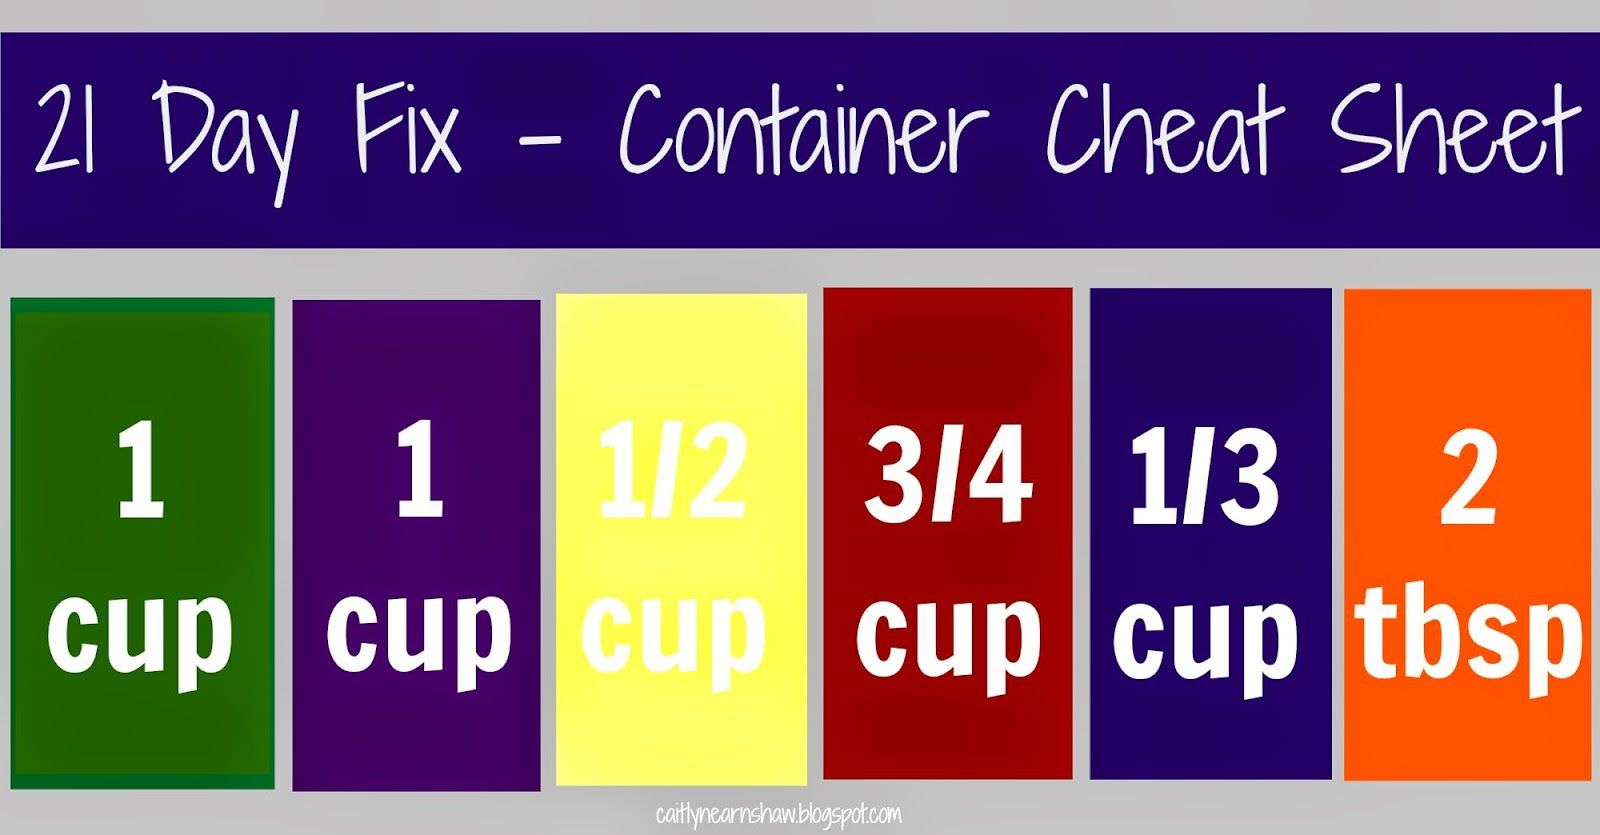 Fix Cheat 21 Day Containers 21 Day Fix